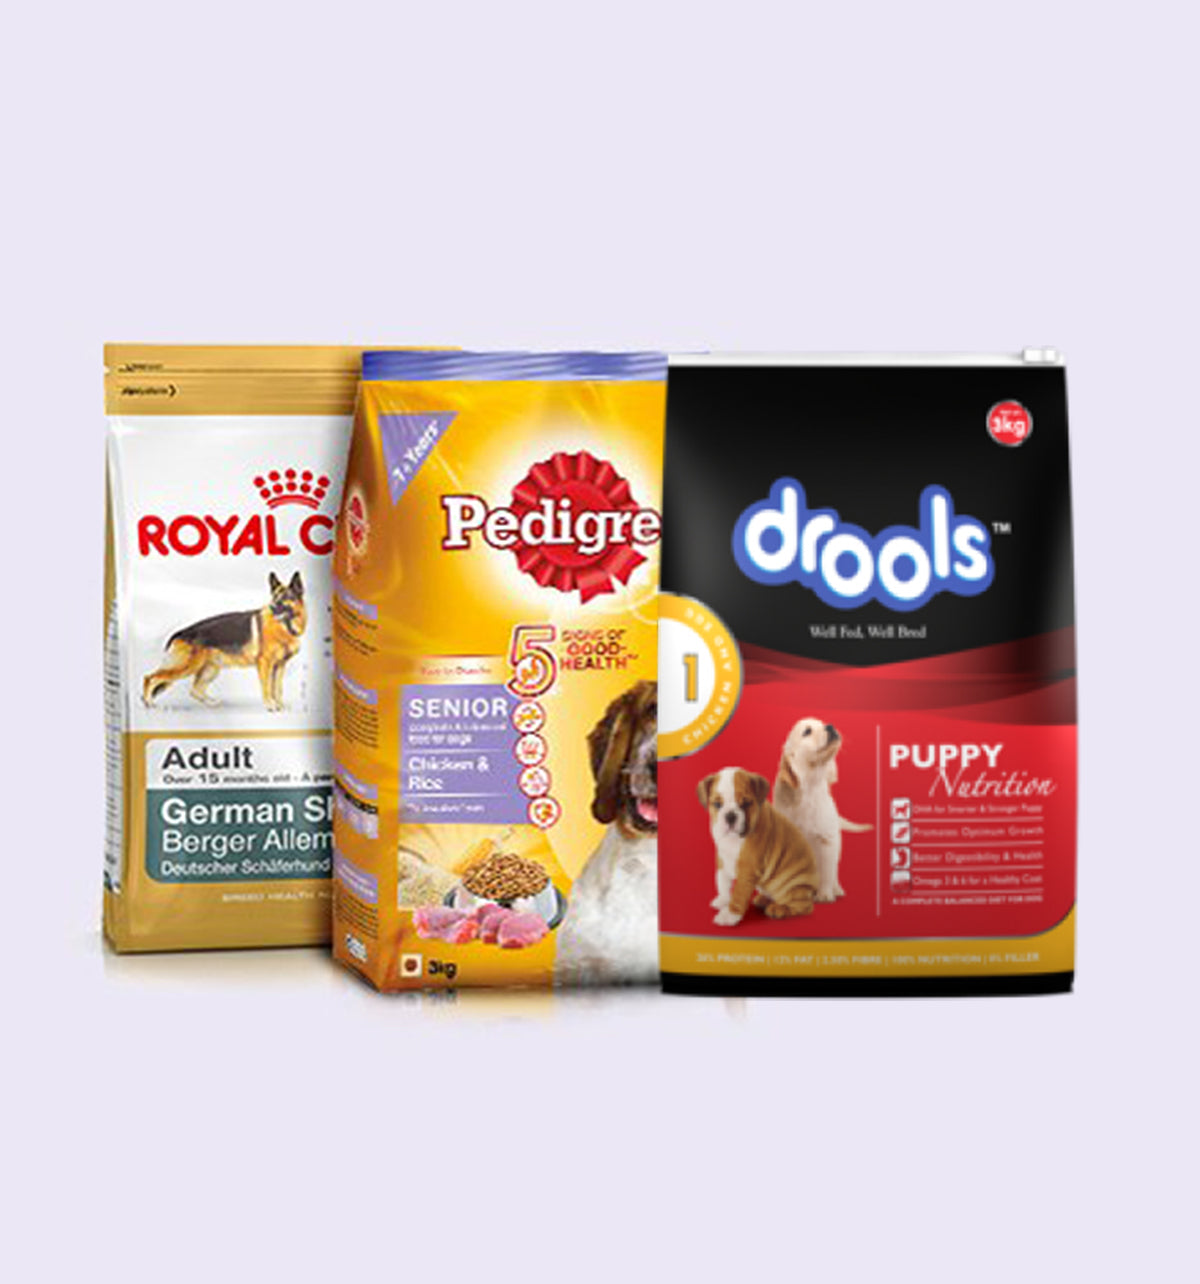 Which Brand is best for your Dog? Royal Canin vs Pedigree vs Drools